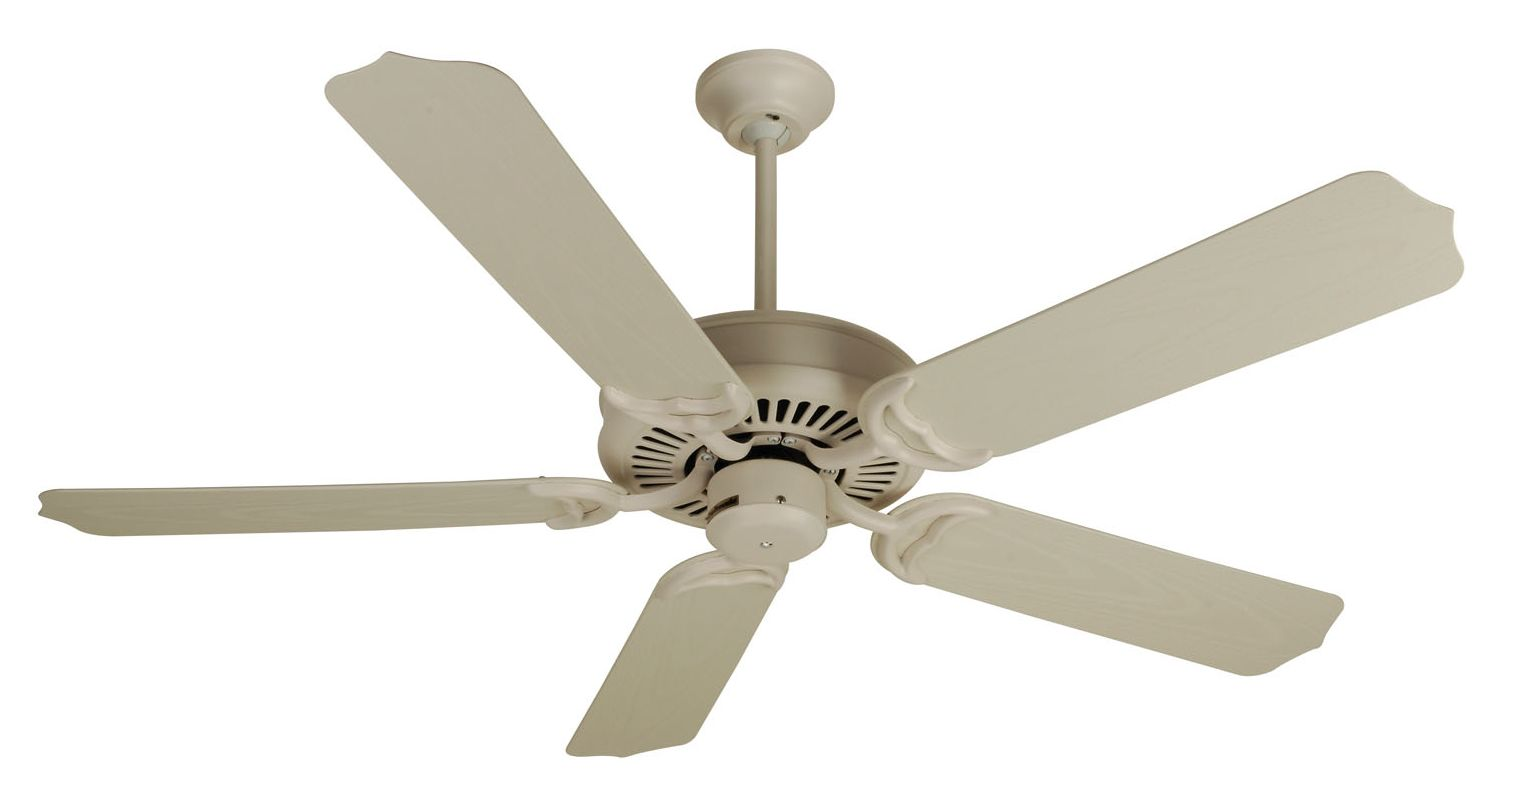 Craftmade K10172 Porch Fan 52&quote 5 Blade Indoor Ceiling Fan - Blades